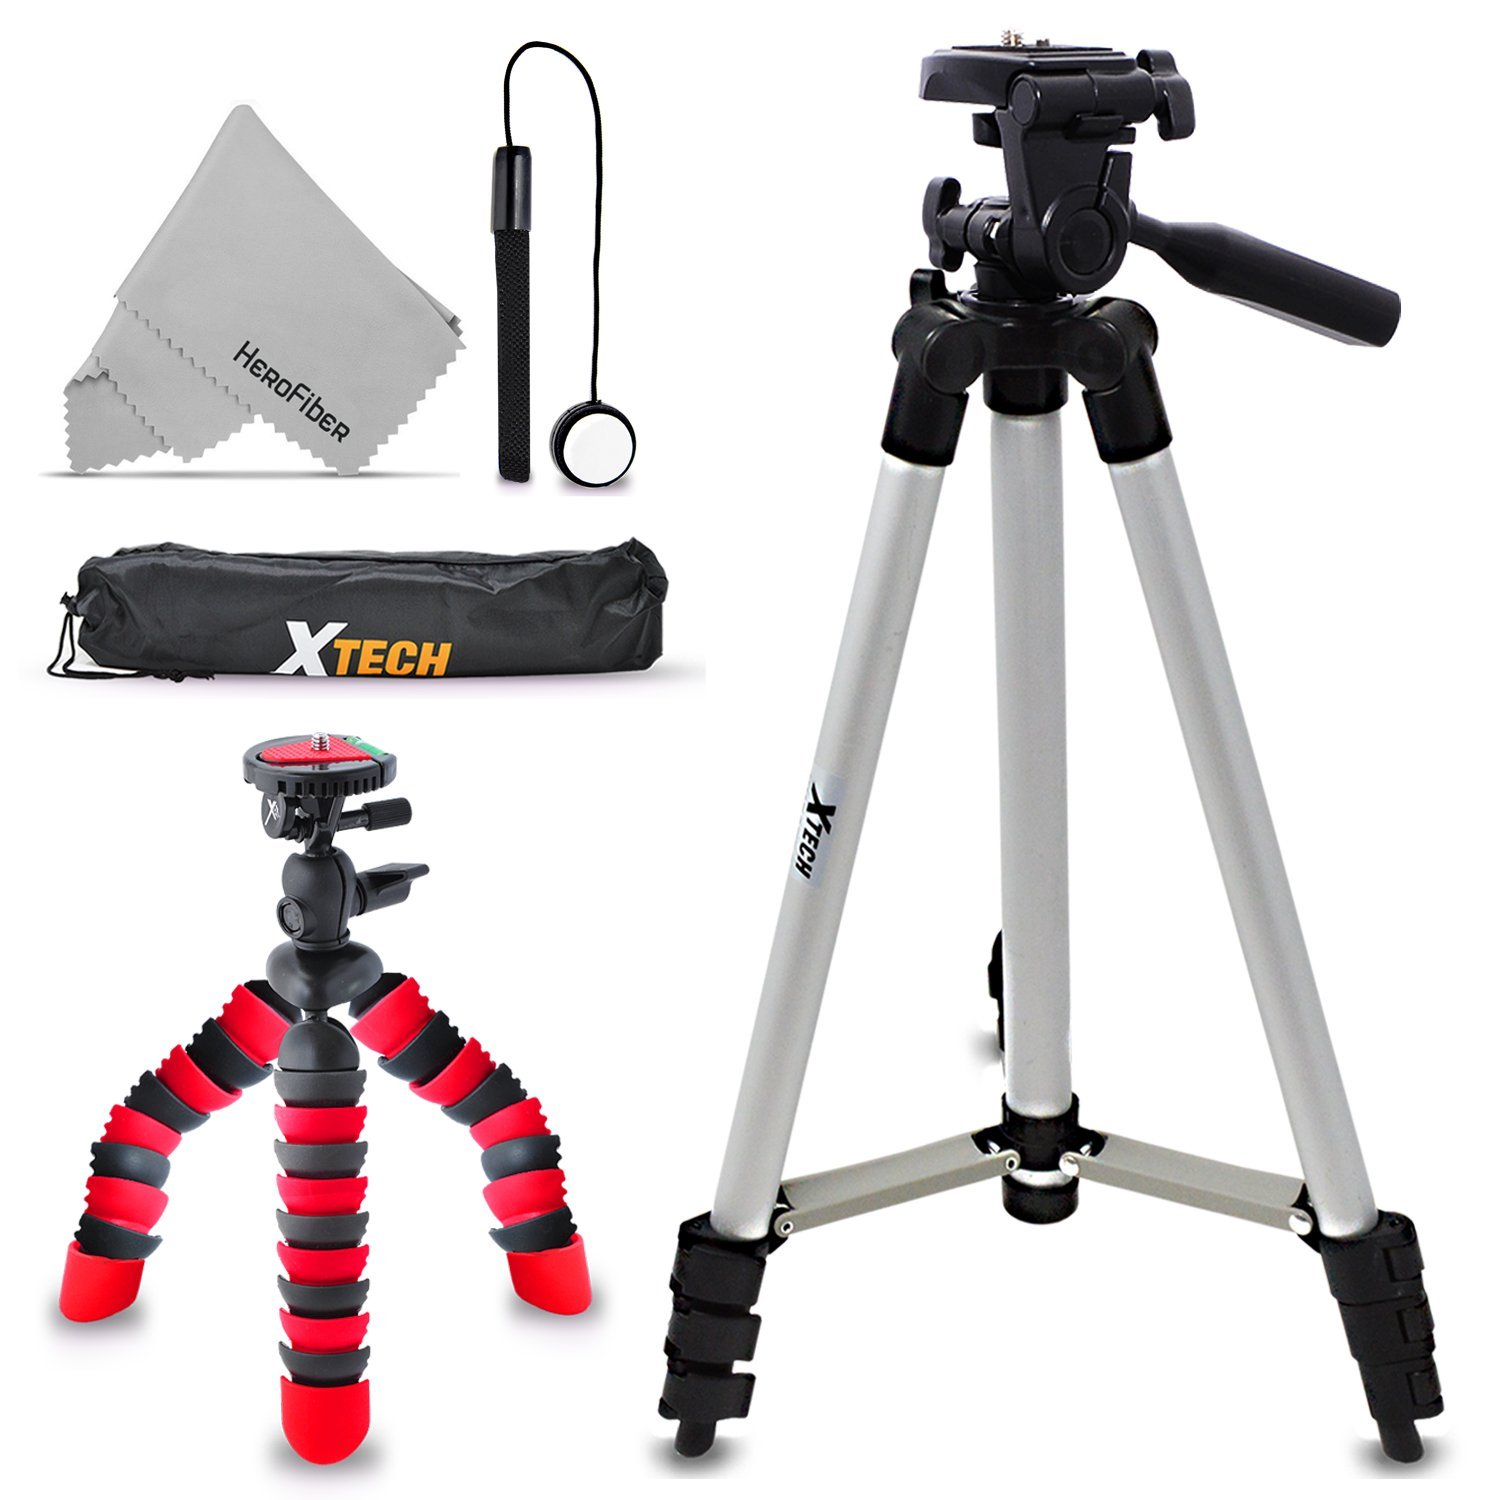 "Xtech Double Tripod Kit with 50"" Inch Tripod + 12"" Flexible Tripod for Nikon Coolpix W300, W100, A900, AW130, AW120, A10, A100, S33, S32, S9900, S7000, S6900, L31, L32, S3700, S2900 by HeroFiber"